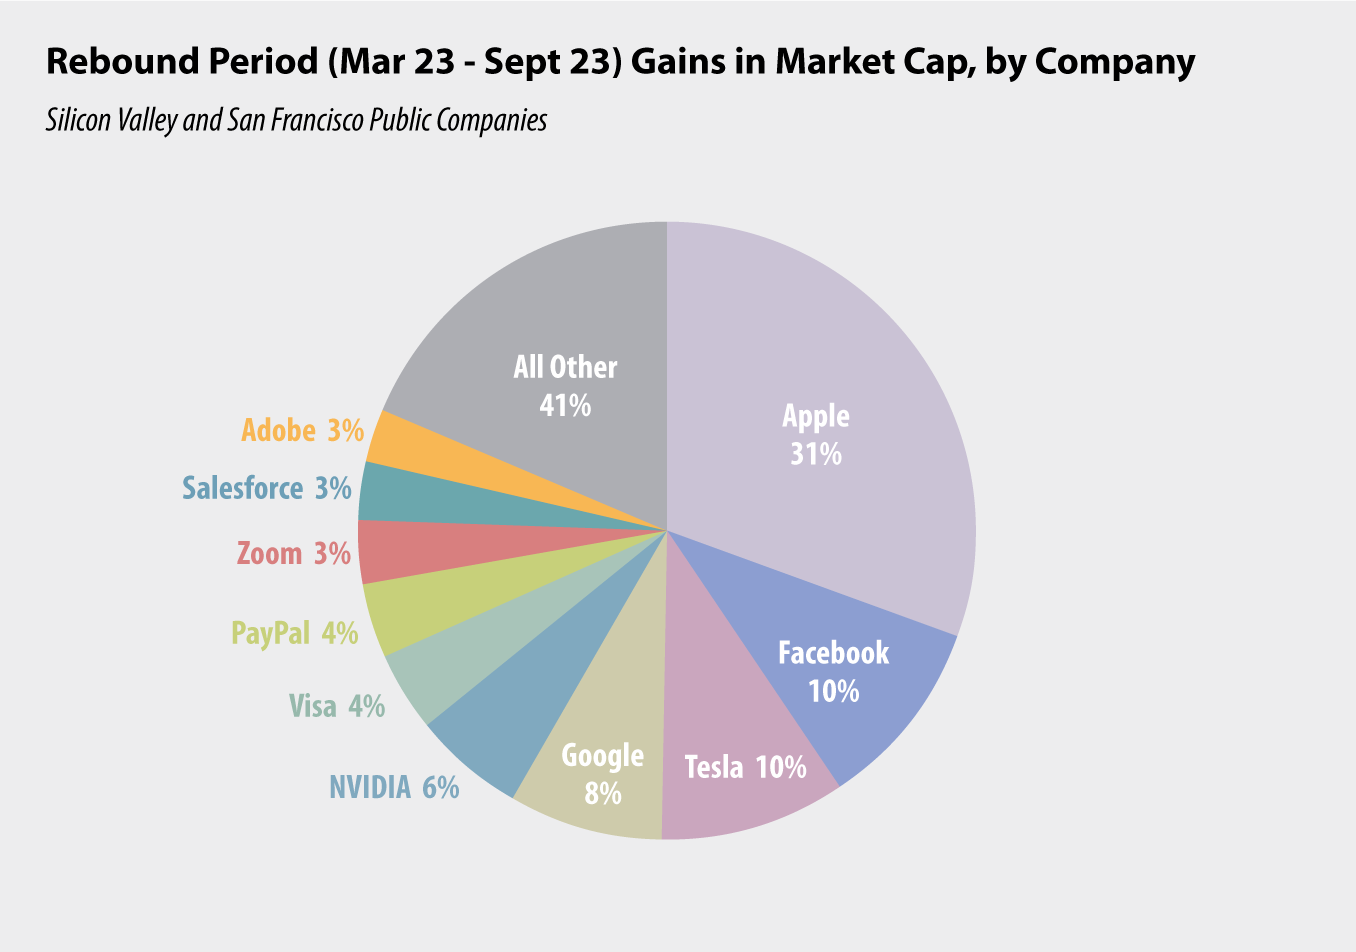 pie chart: Rebound Period (Mar 23 - Sept 23) Gains in Market Cap, by Company